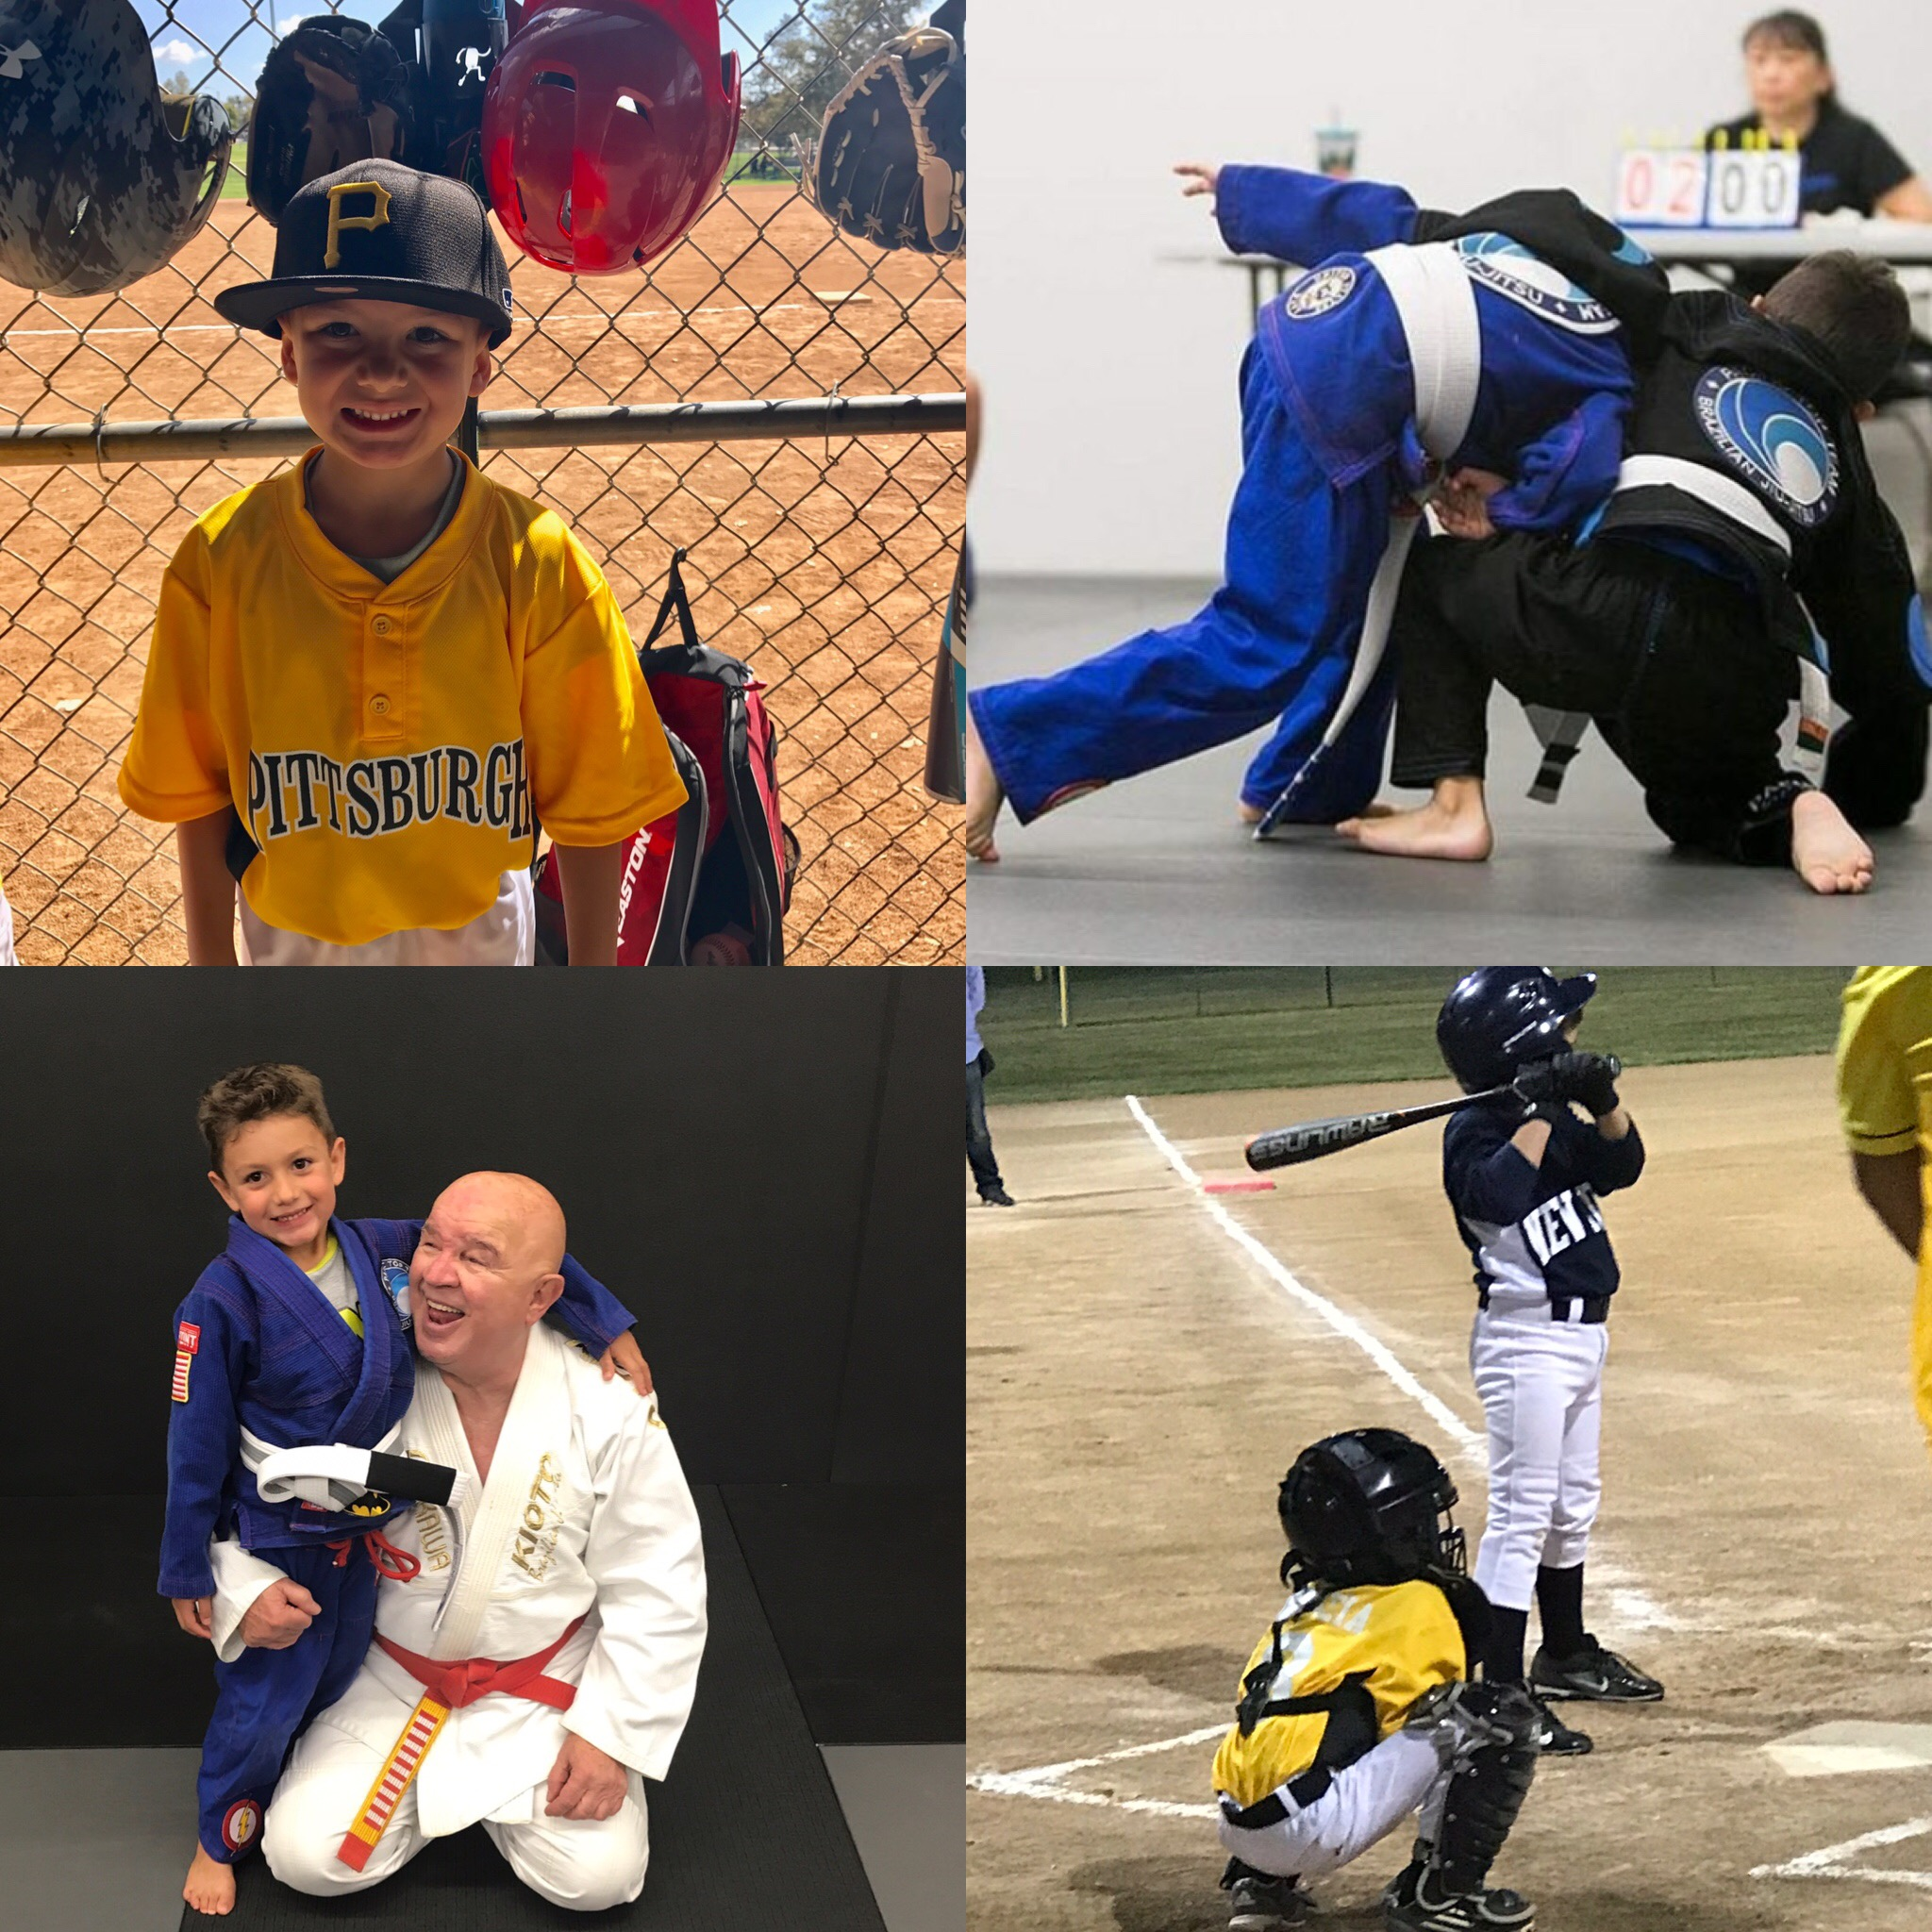 Hayden-a Little Ninja at PTT that was recently promoted to his White with Gray Belt in Brazilian         Jiu Jitsu and All Star Baseball Player!!!